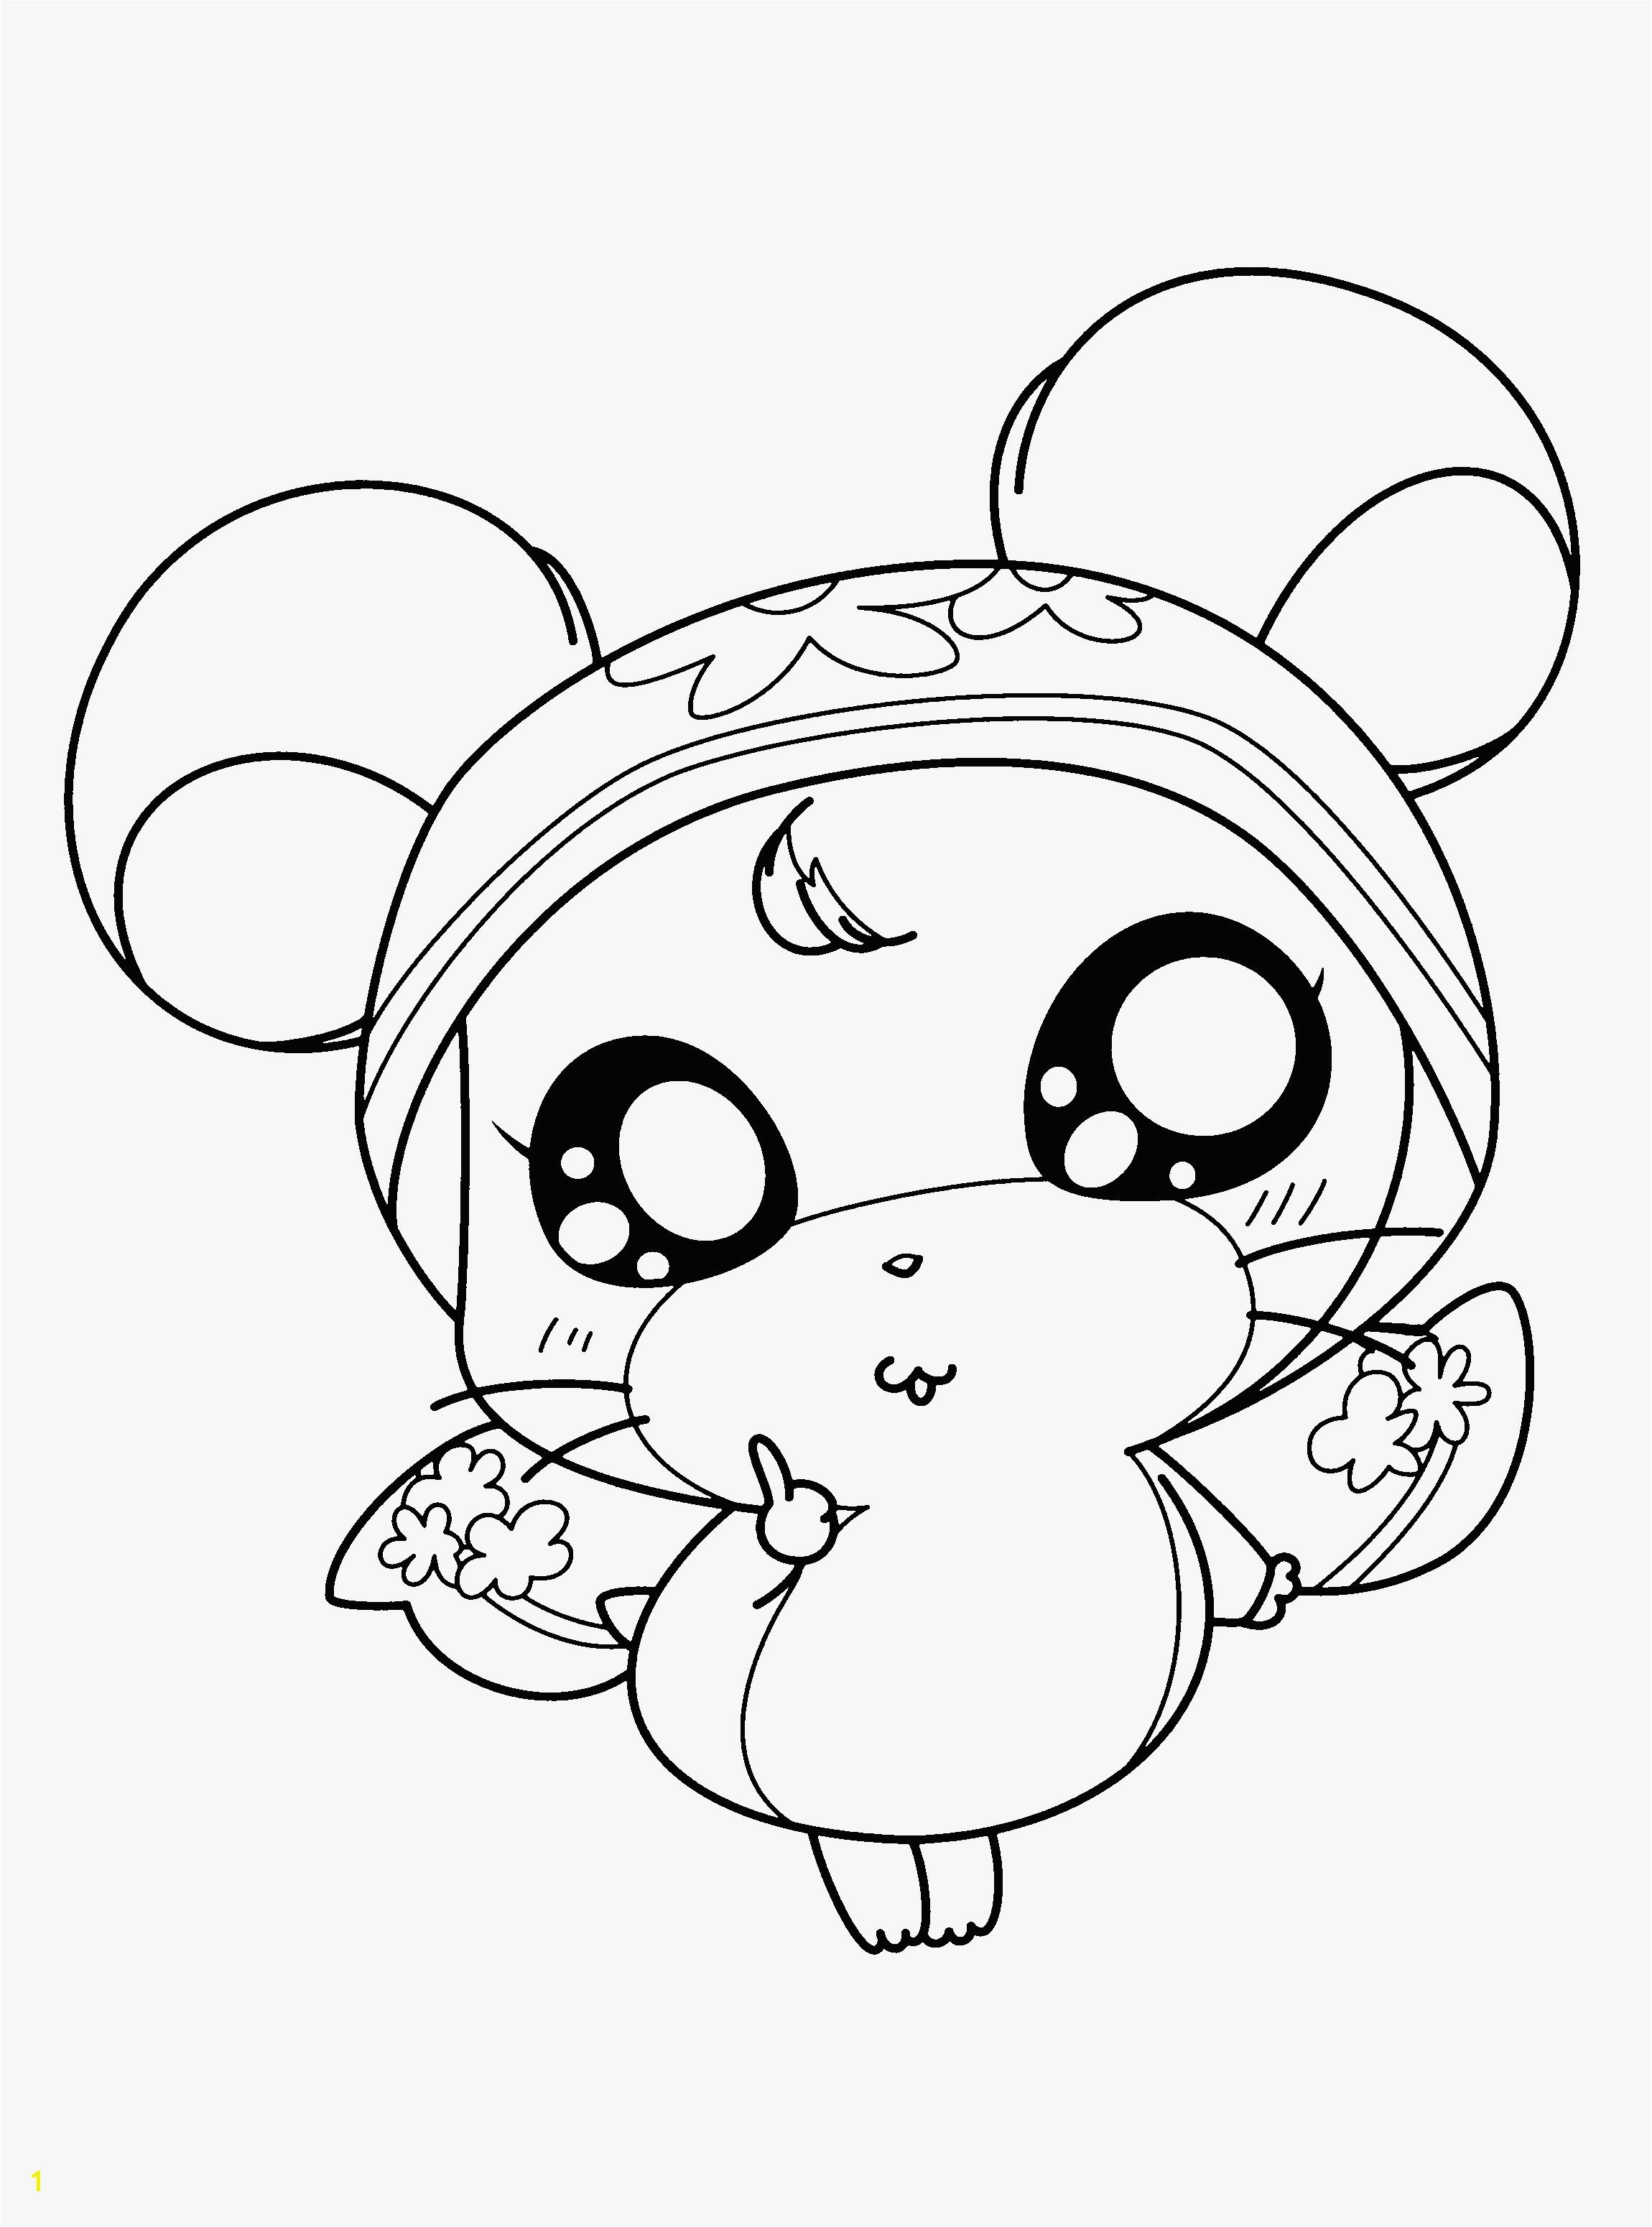 Pokemon Coloring Pages Printable Black and White 12 Inspirational Free Pokemon Coloring Pages Black and White